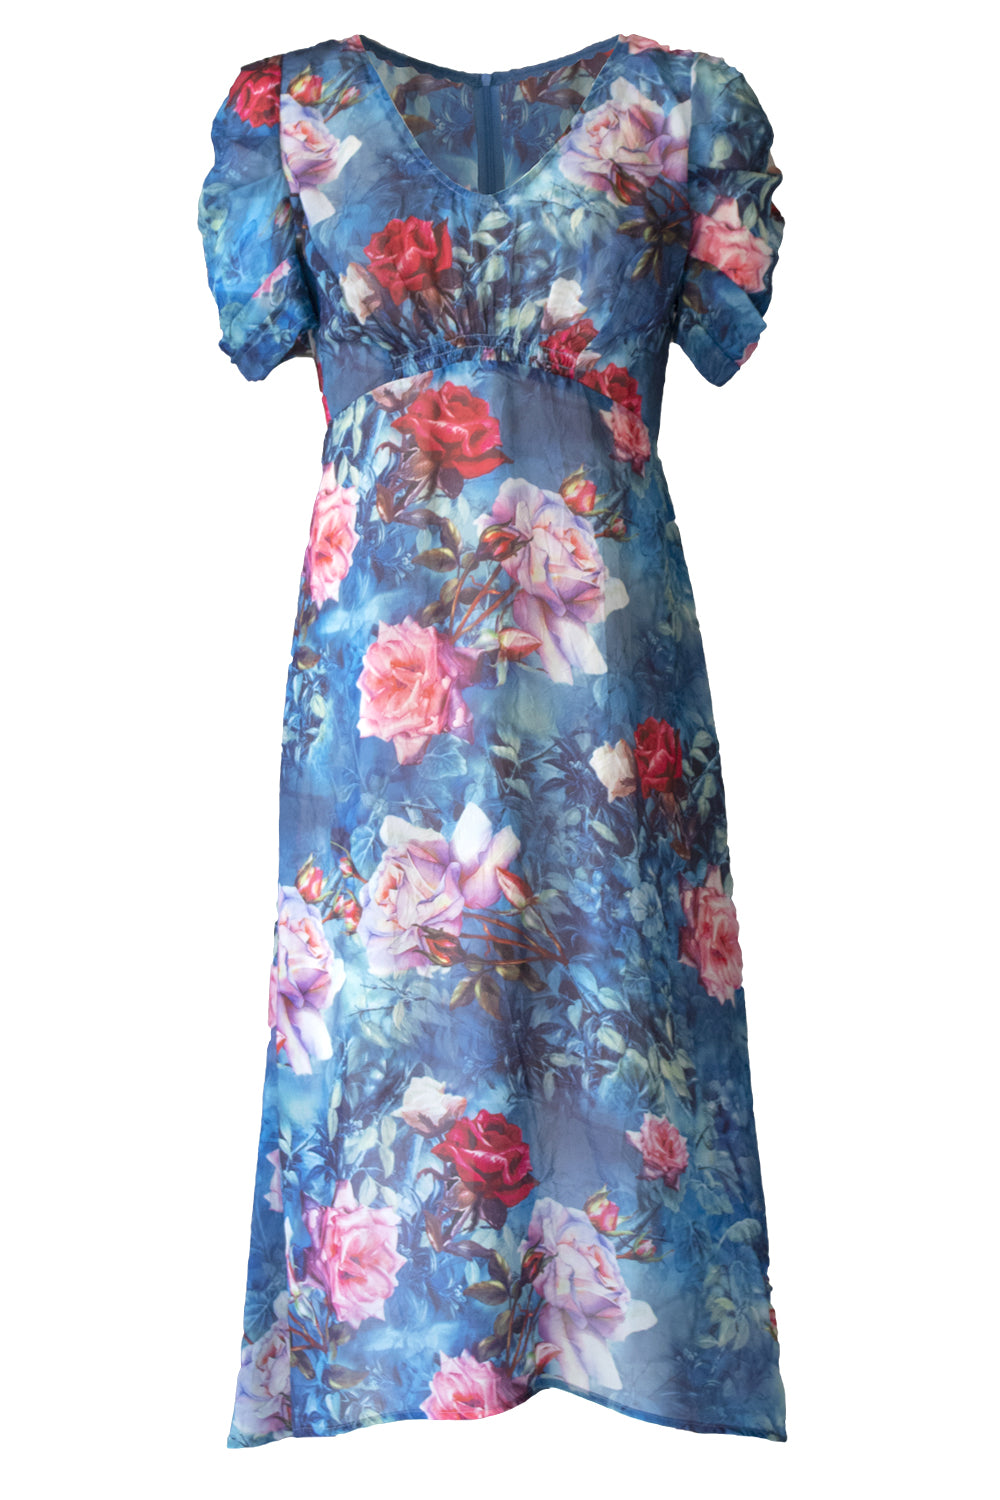 Summer Love Dress | Annah Stretton | Floral Dress | Occasion Dress | Annah Stretton Fashion | Designer Dress